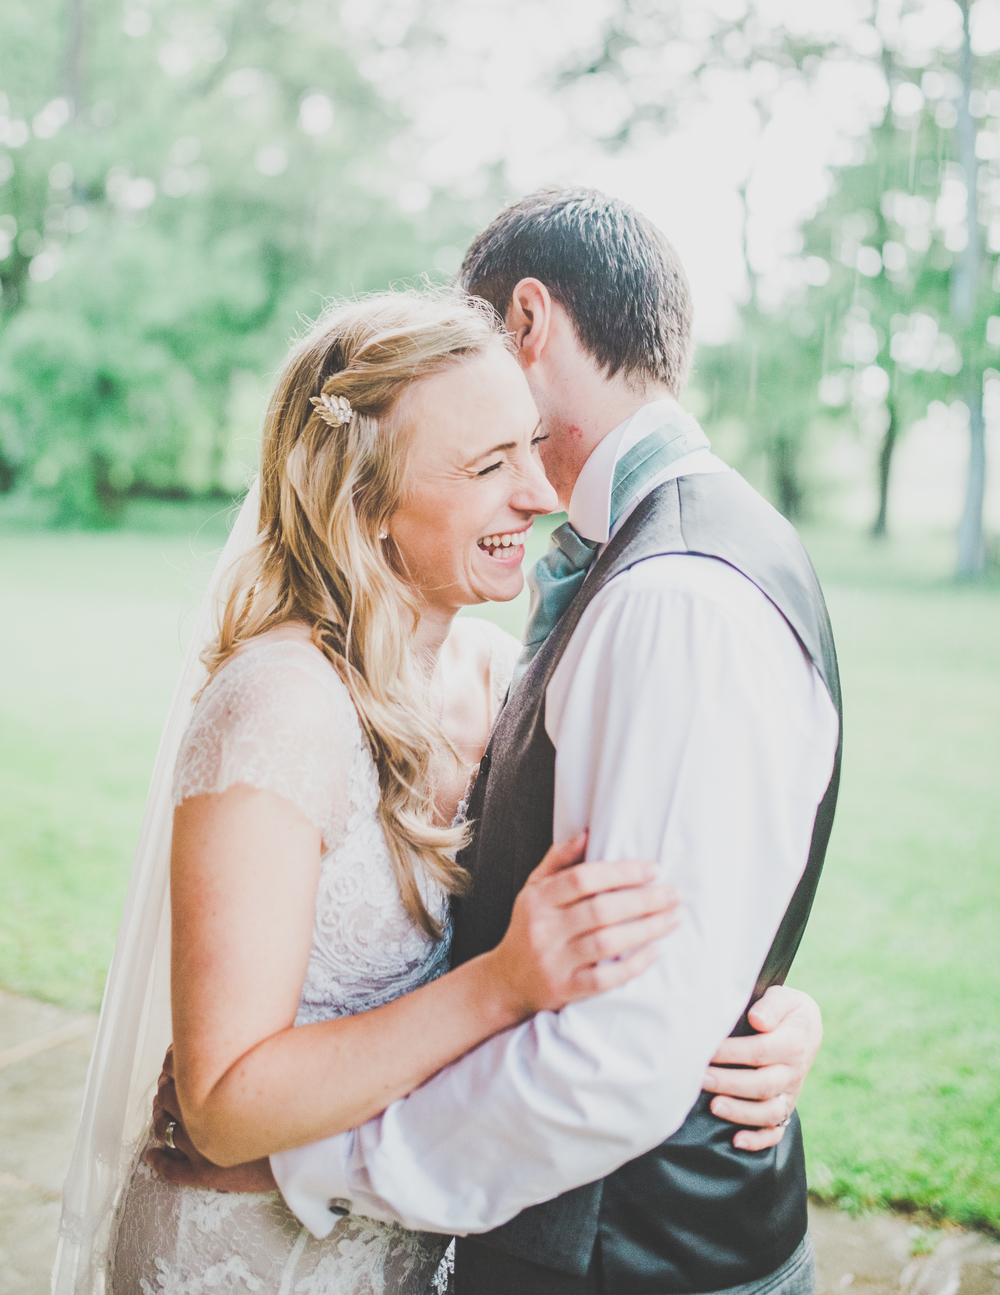 Laughing bride and groom potrait -Wedding photography at The Oak Tree of Peover.